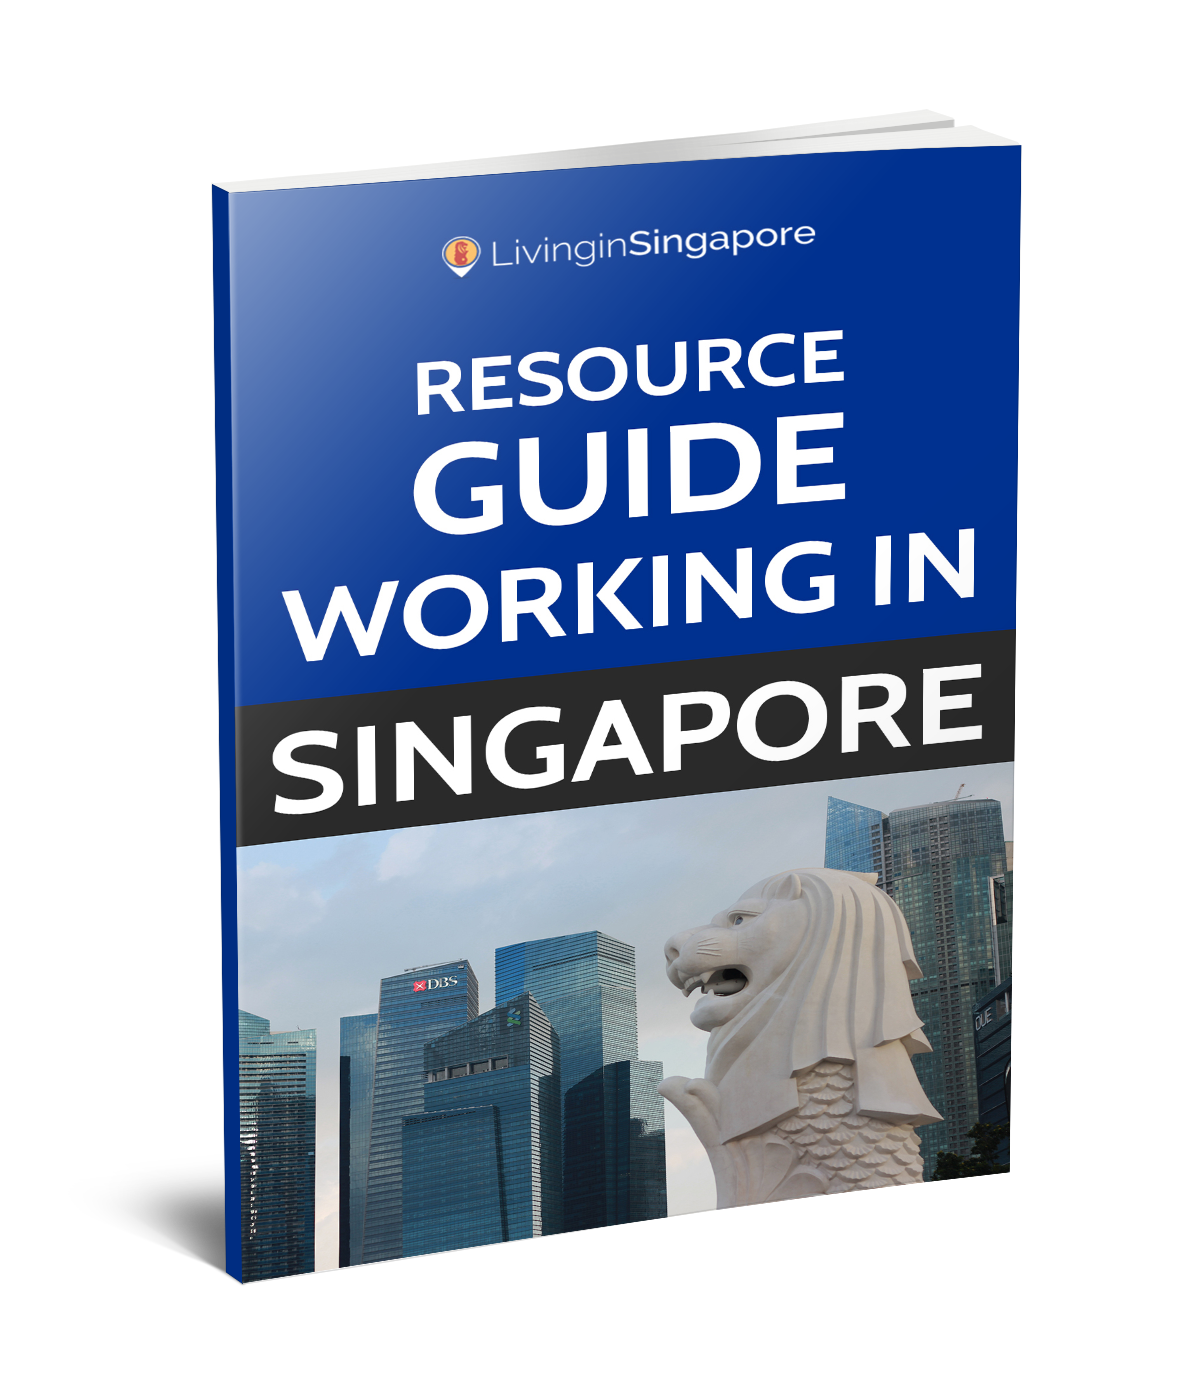 7 easy steps to work in singapore singapore expats guide the 35 tools resources 9 000 expats have used to help move to singapore quickly and easily and a job